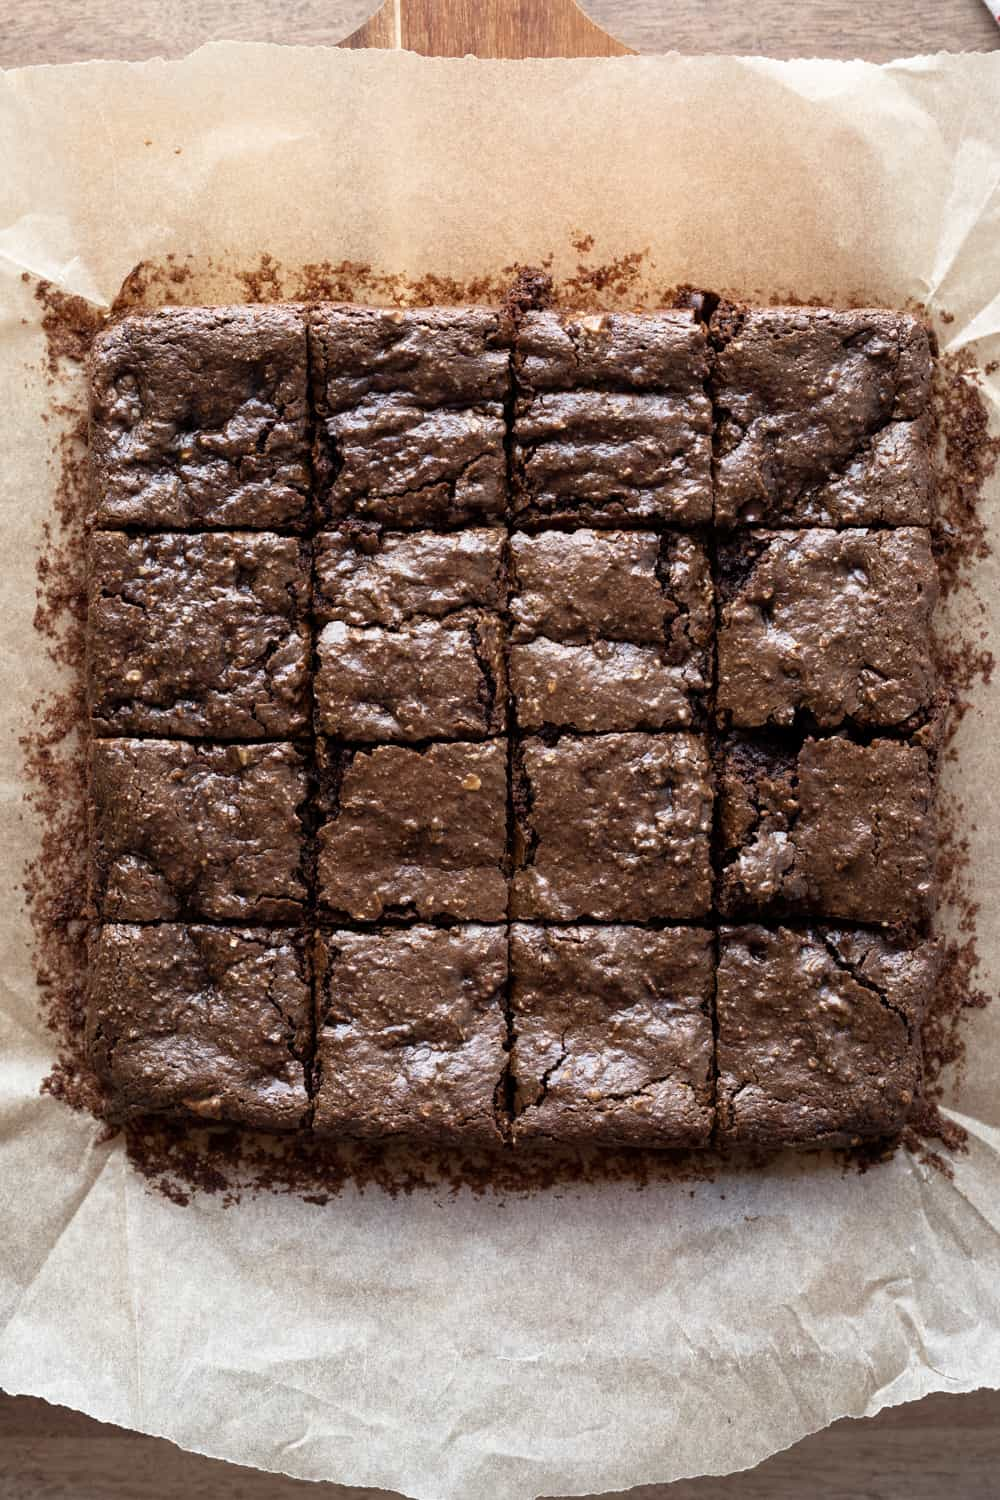 Overhead shot of brownies with shiny, crinkly tops cut into 16 squares.